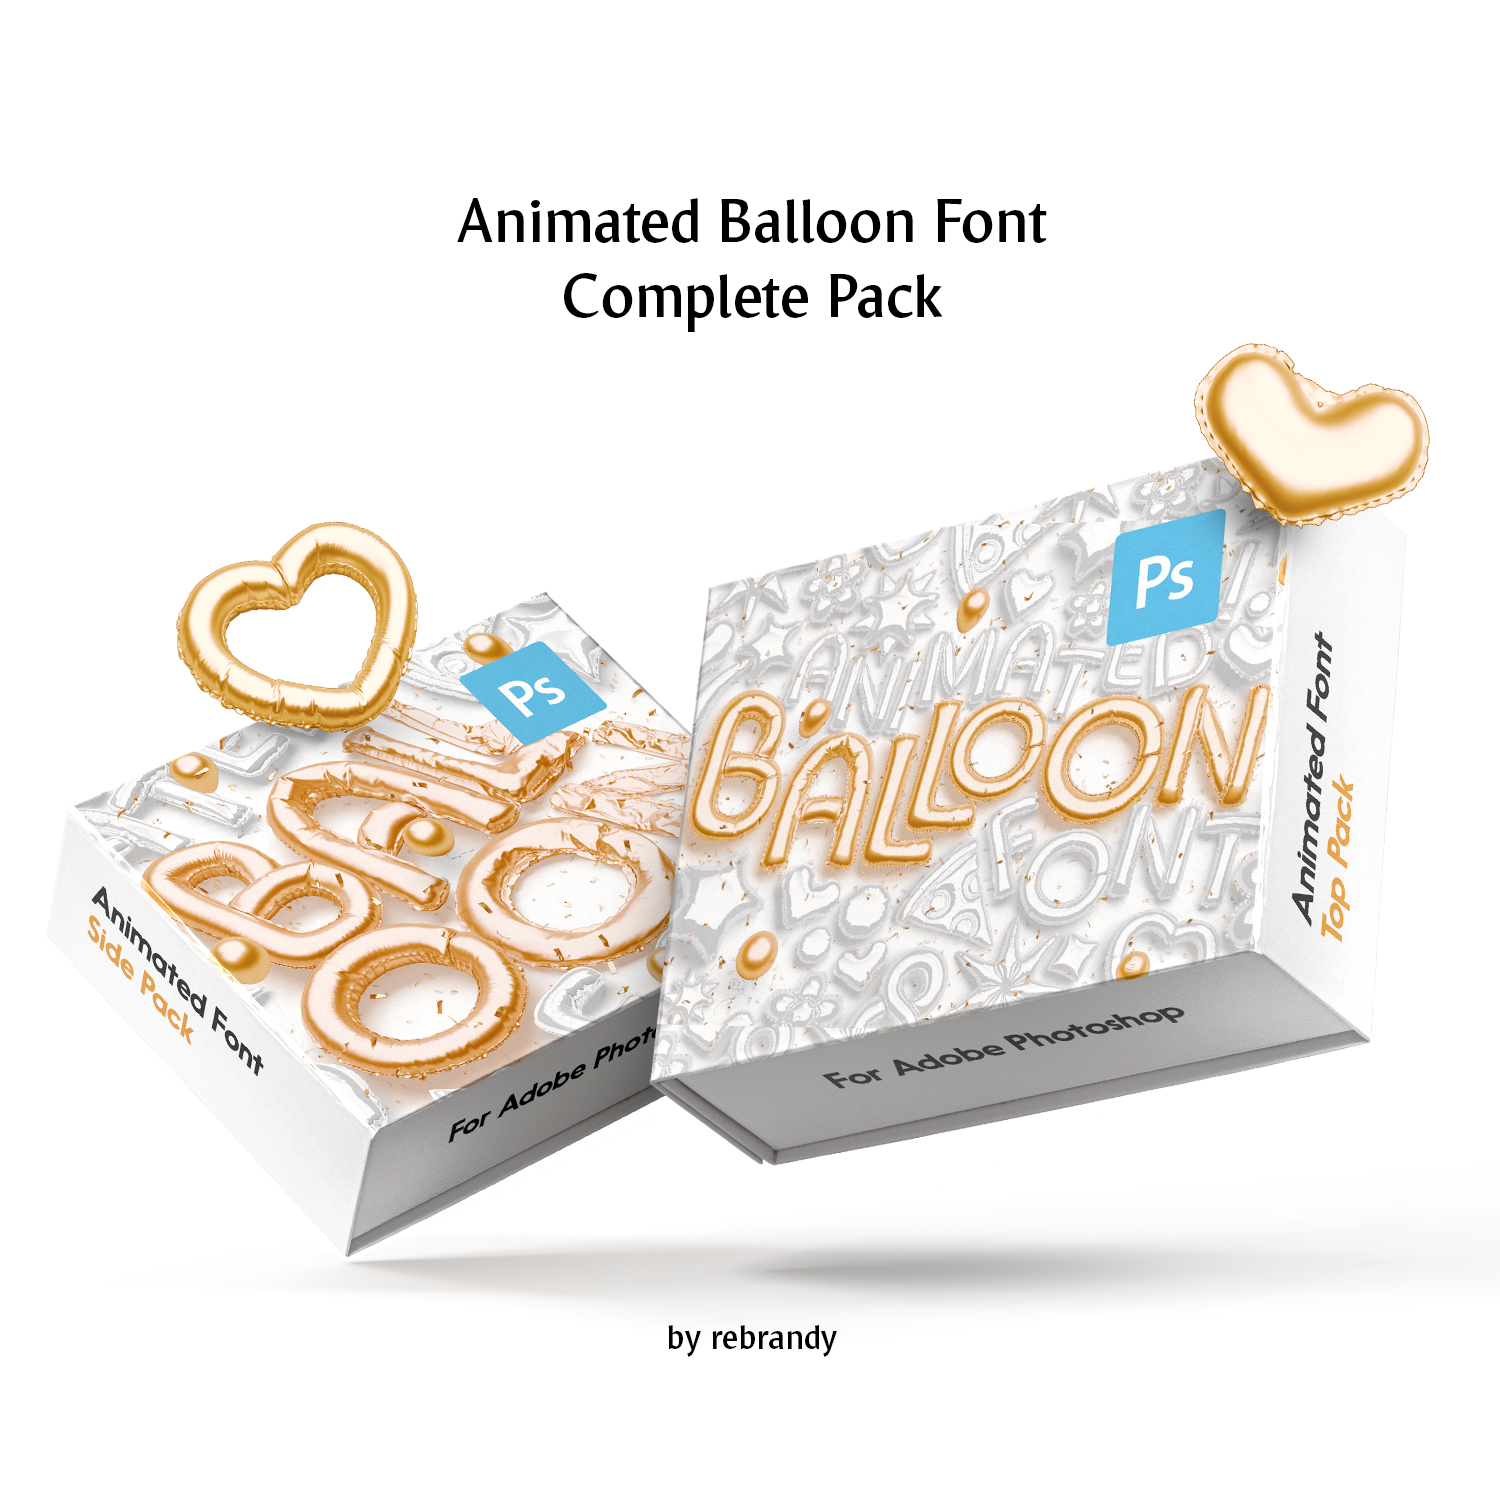 Animated Balloon Font cover image.